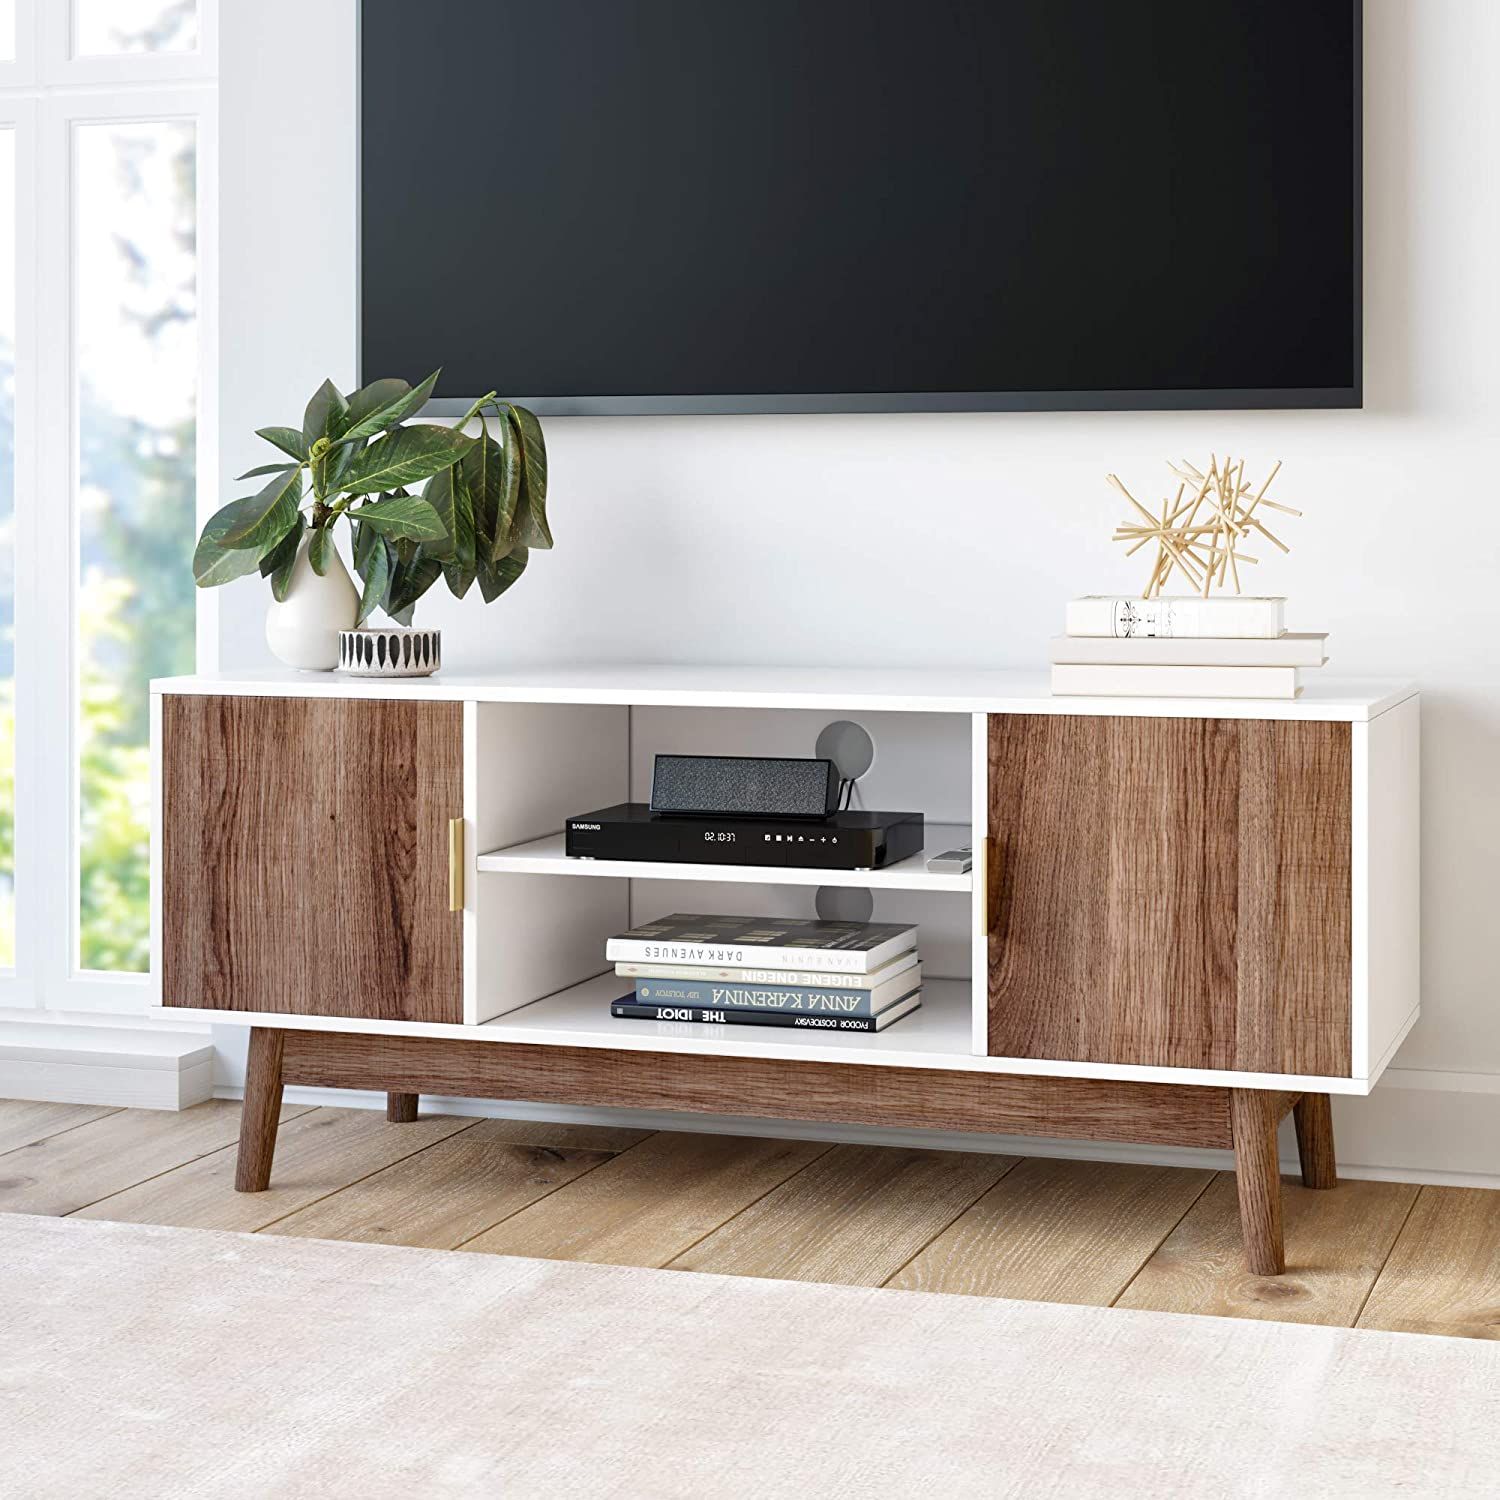 Nathan James 74403 Wesley Scandinavian TV Stand Media Console with Wooden Frame and Cabinet Doors, Multicolor